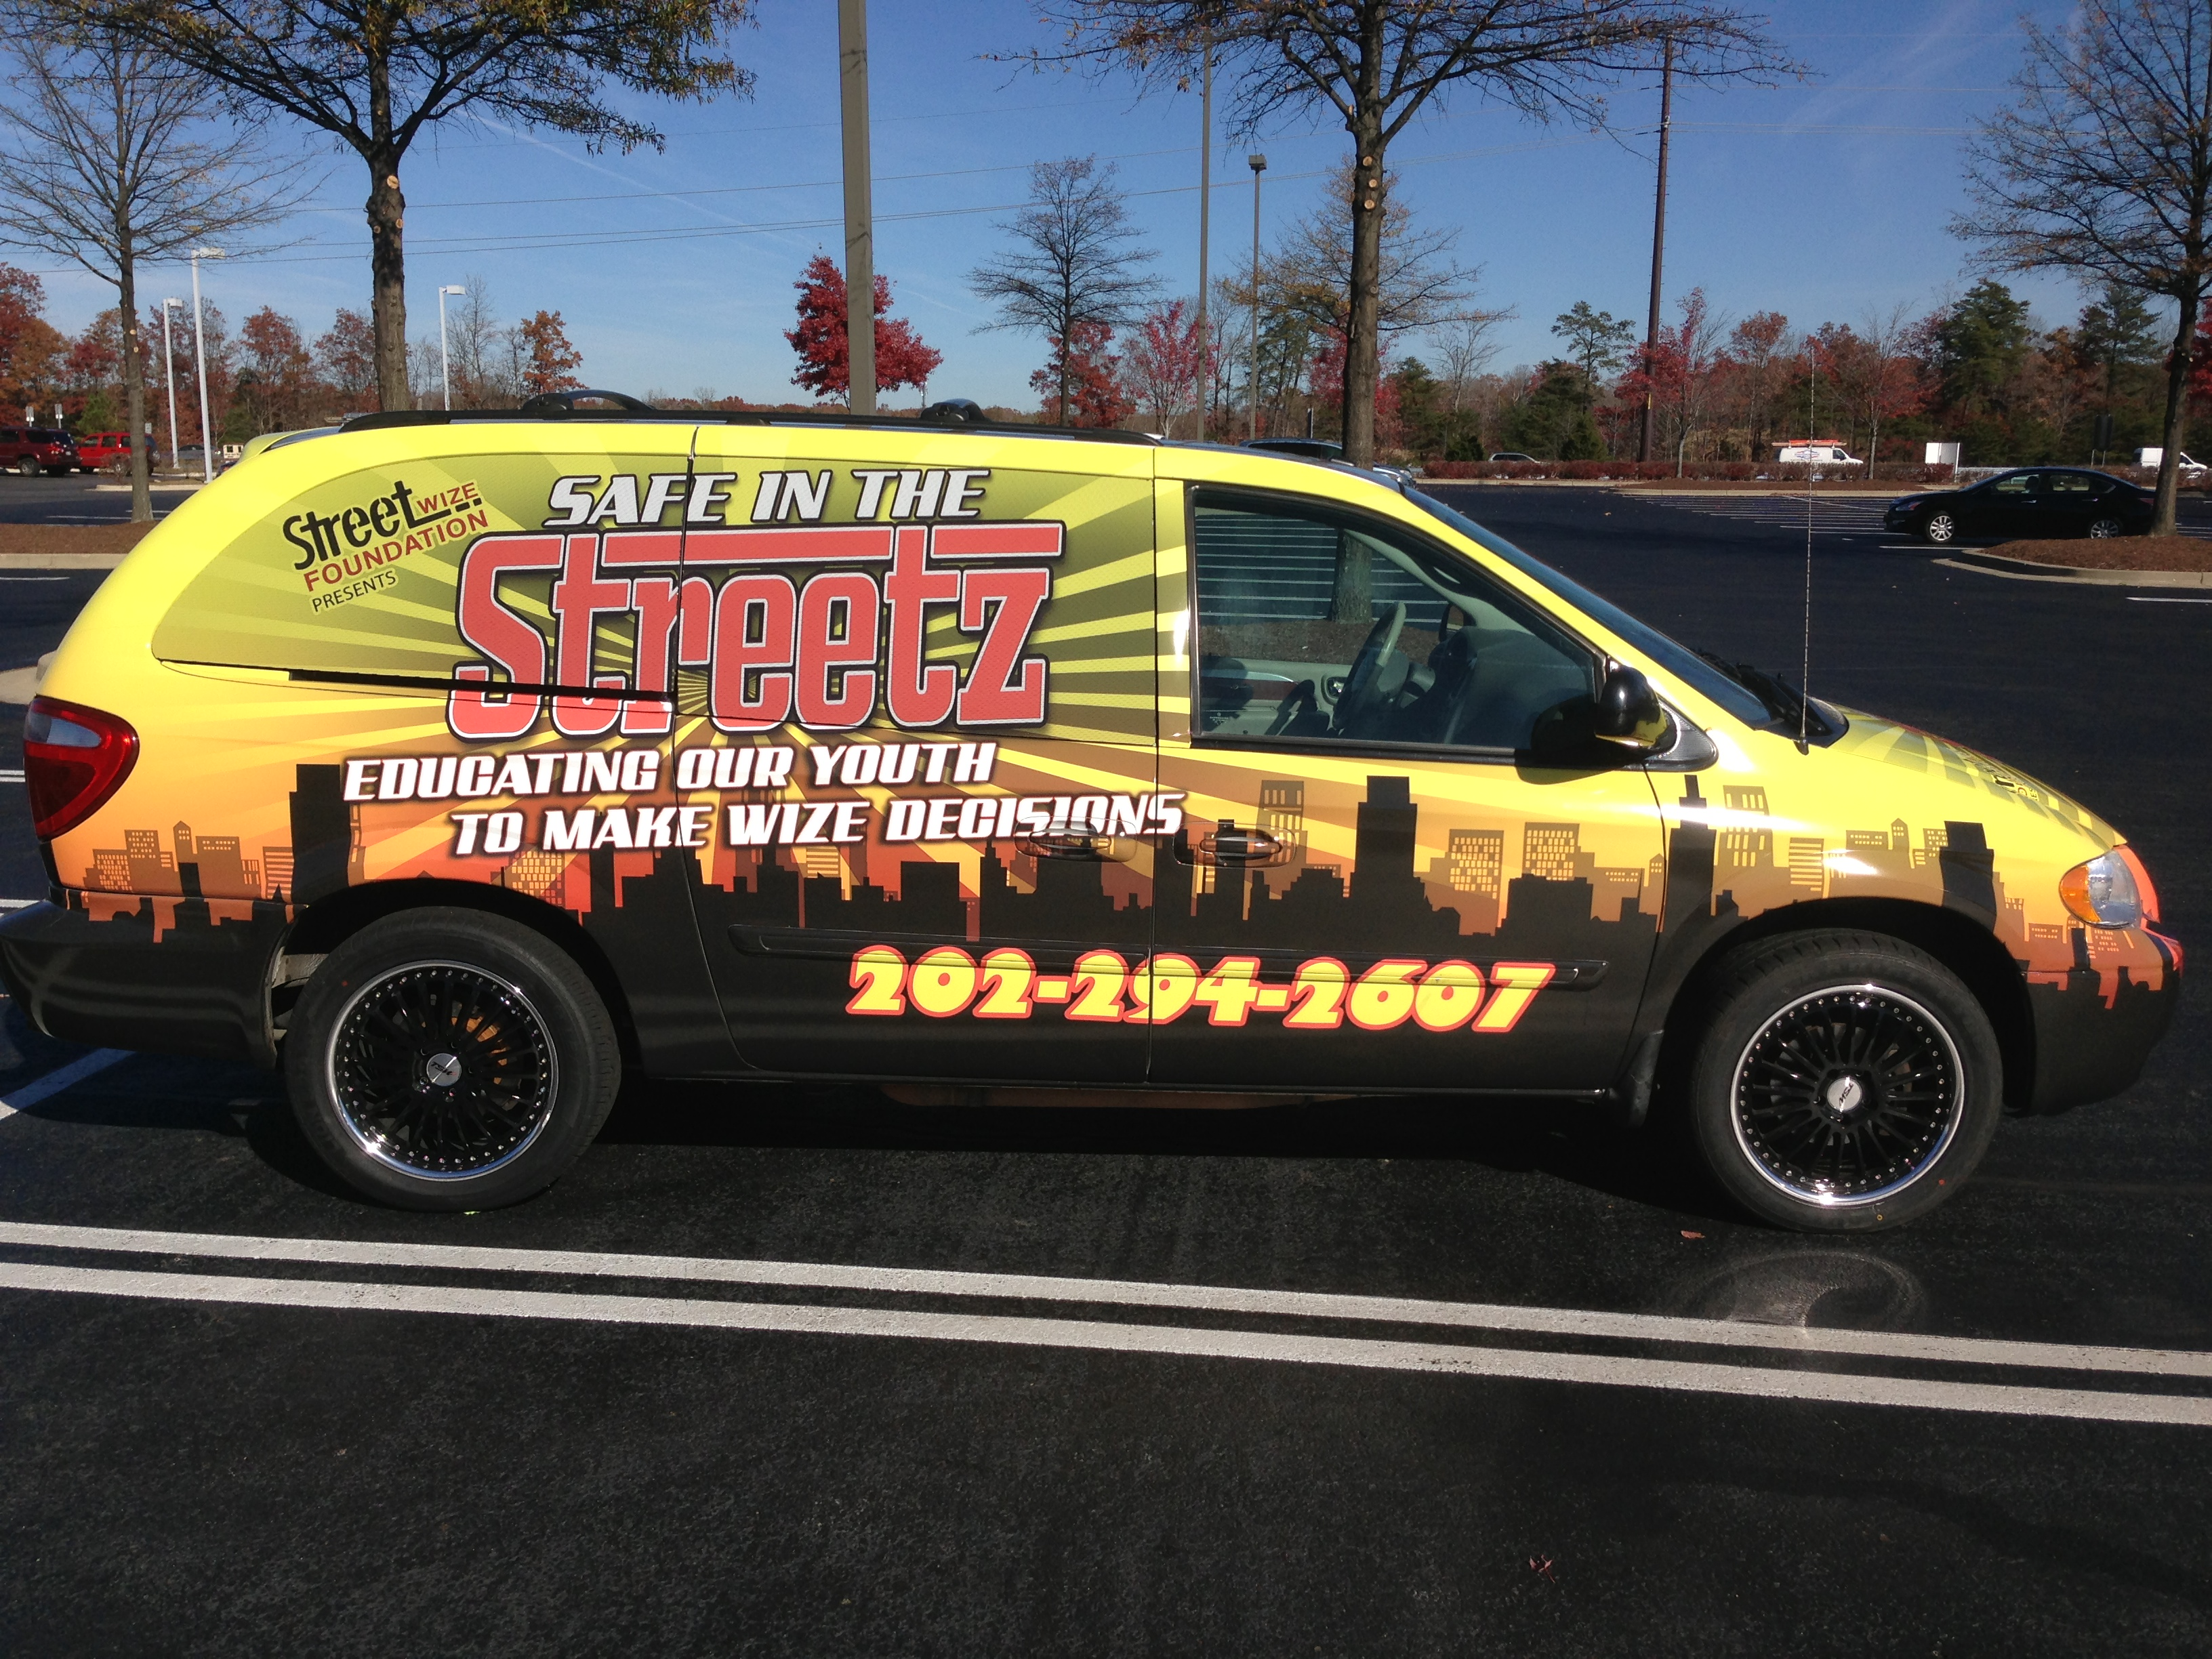 Check Out Street Wize Foundation's New Safe in the Streetz Outreach Van!!